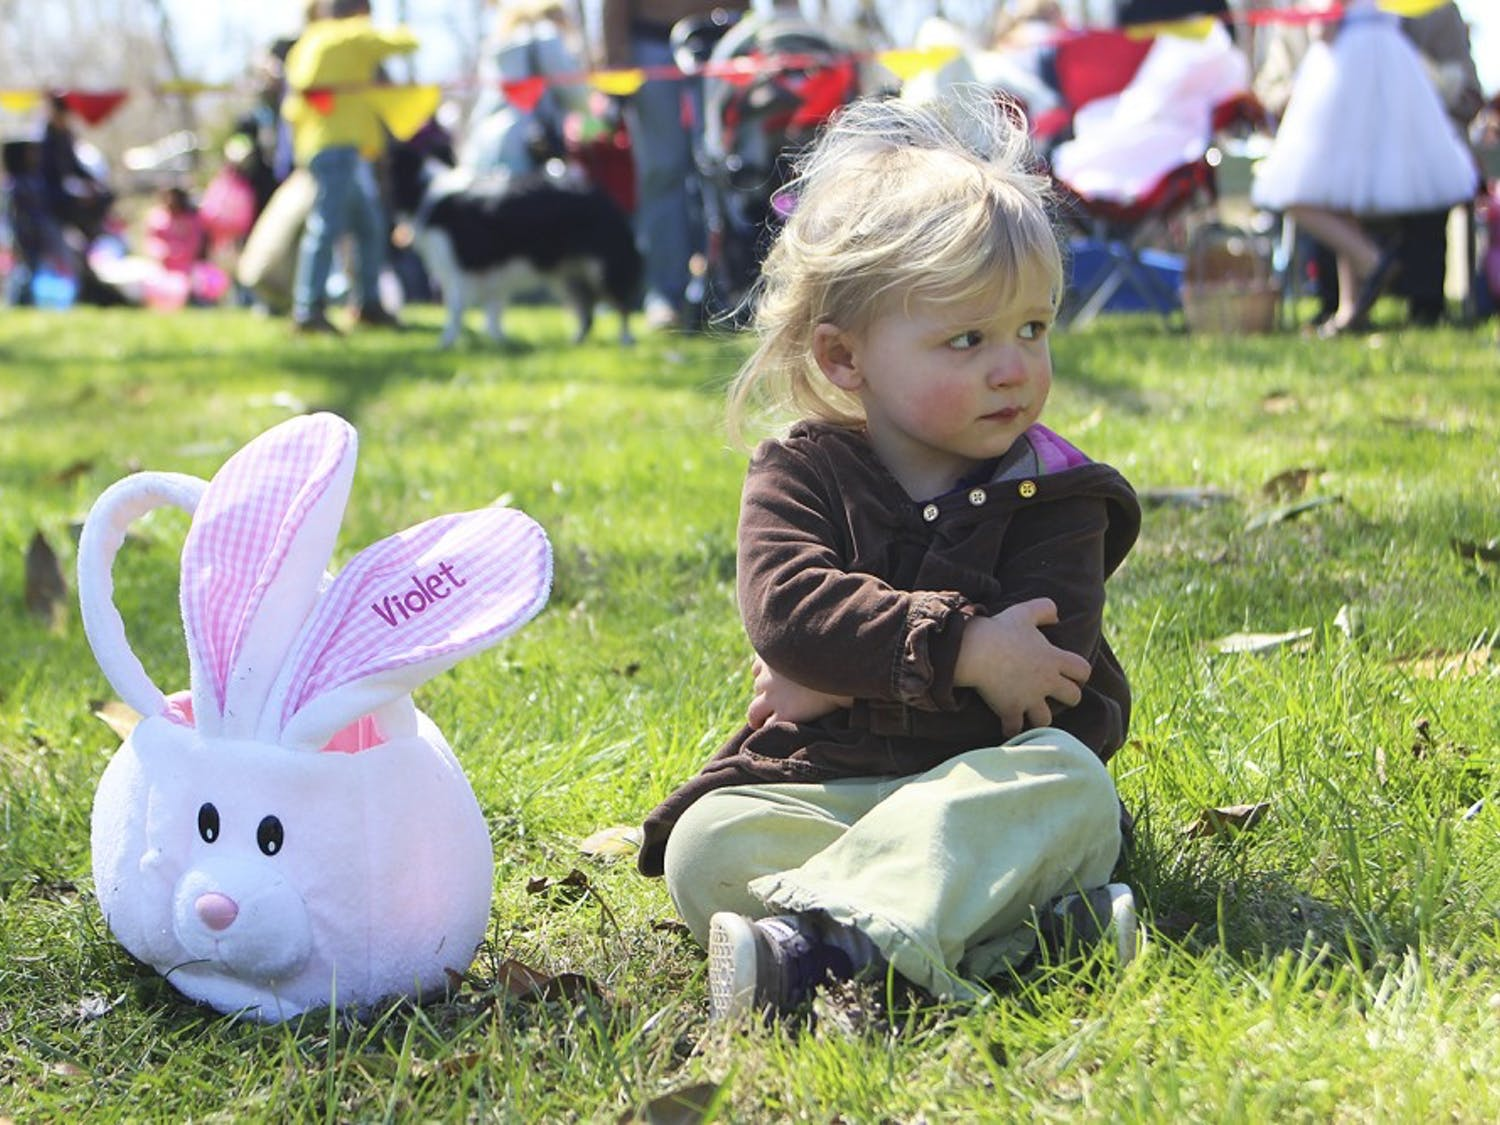 Violet Strickland of Hillsborough sits with her egg basket after the conclusion of Saturday's egg hunt at River Park in Hillsborough. She found one egg.